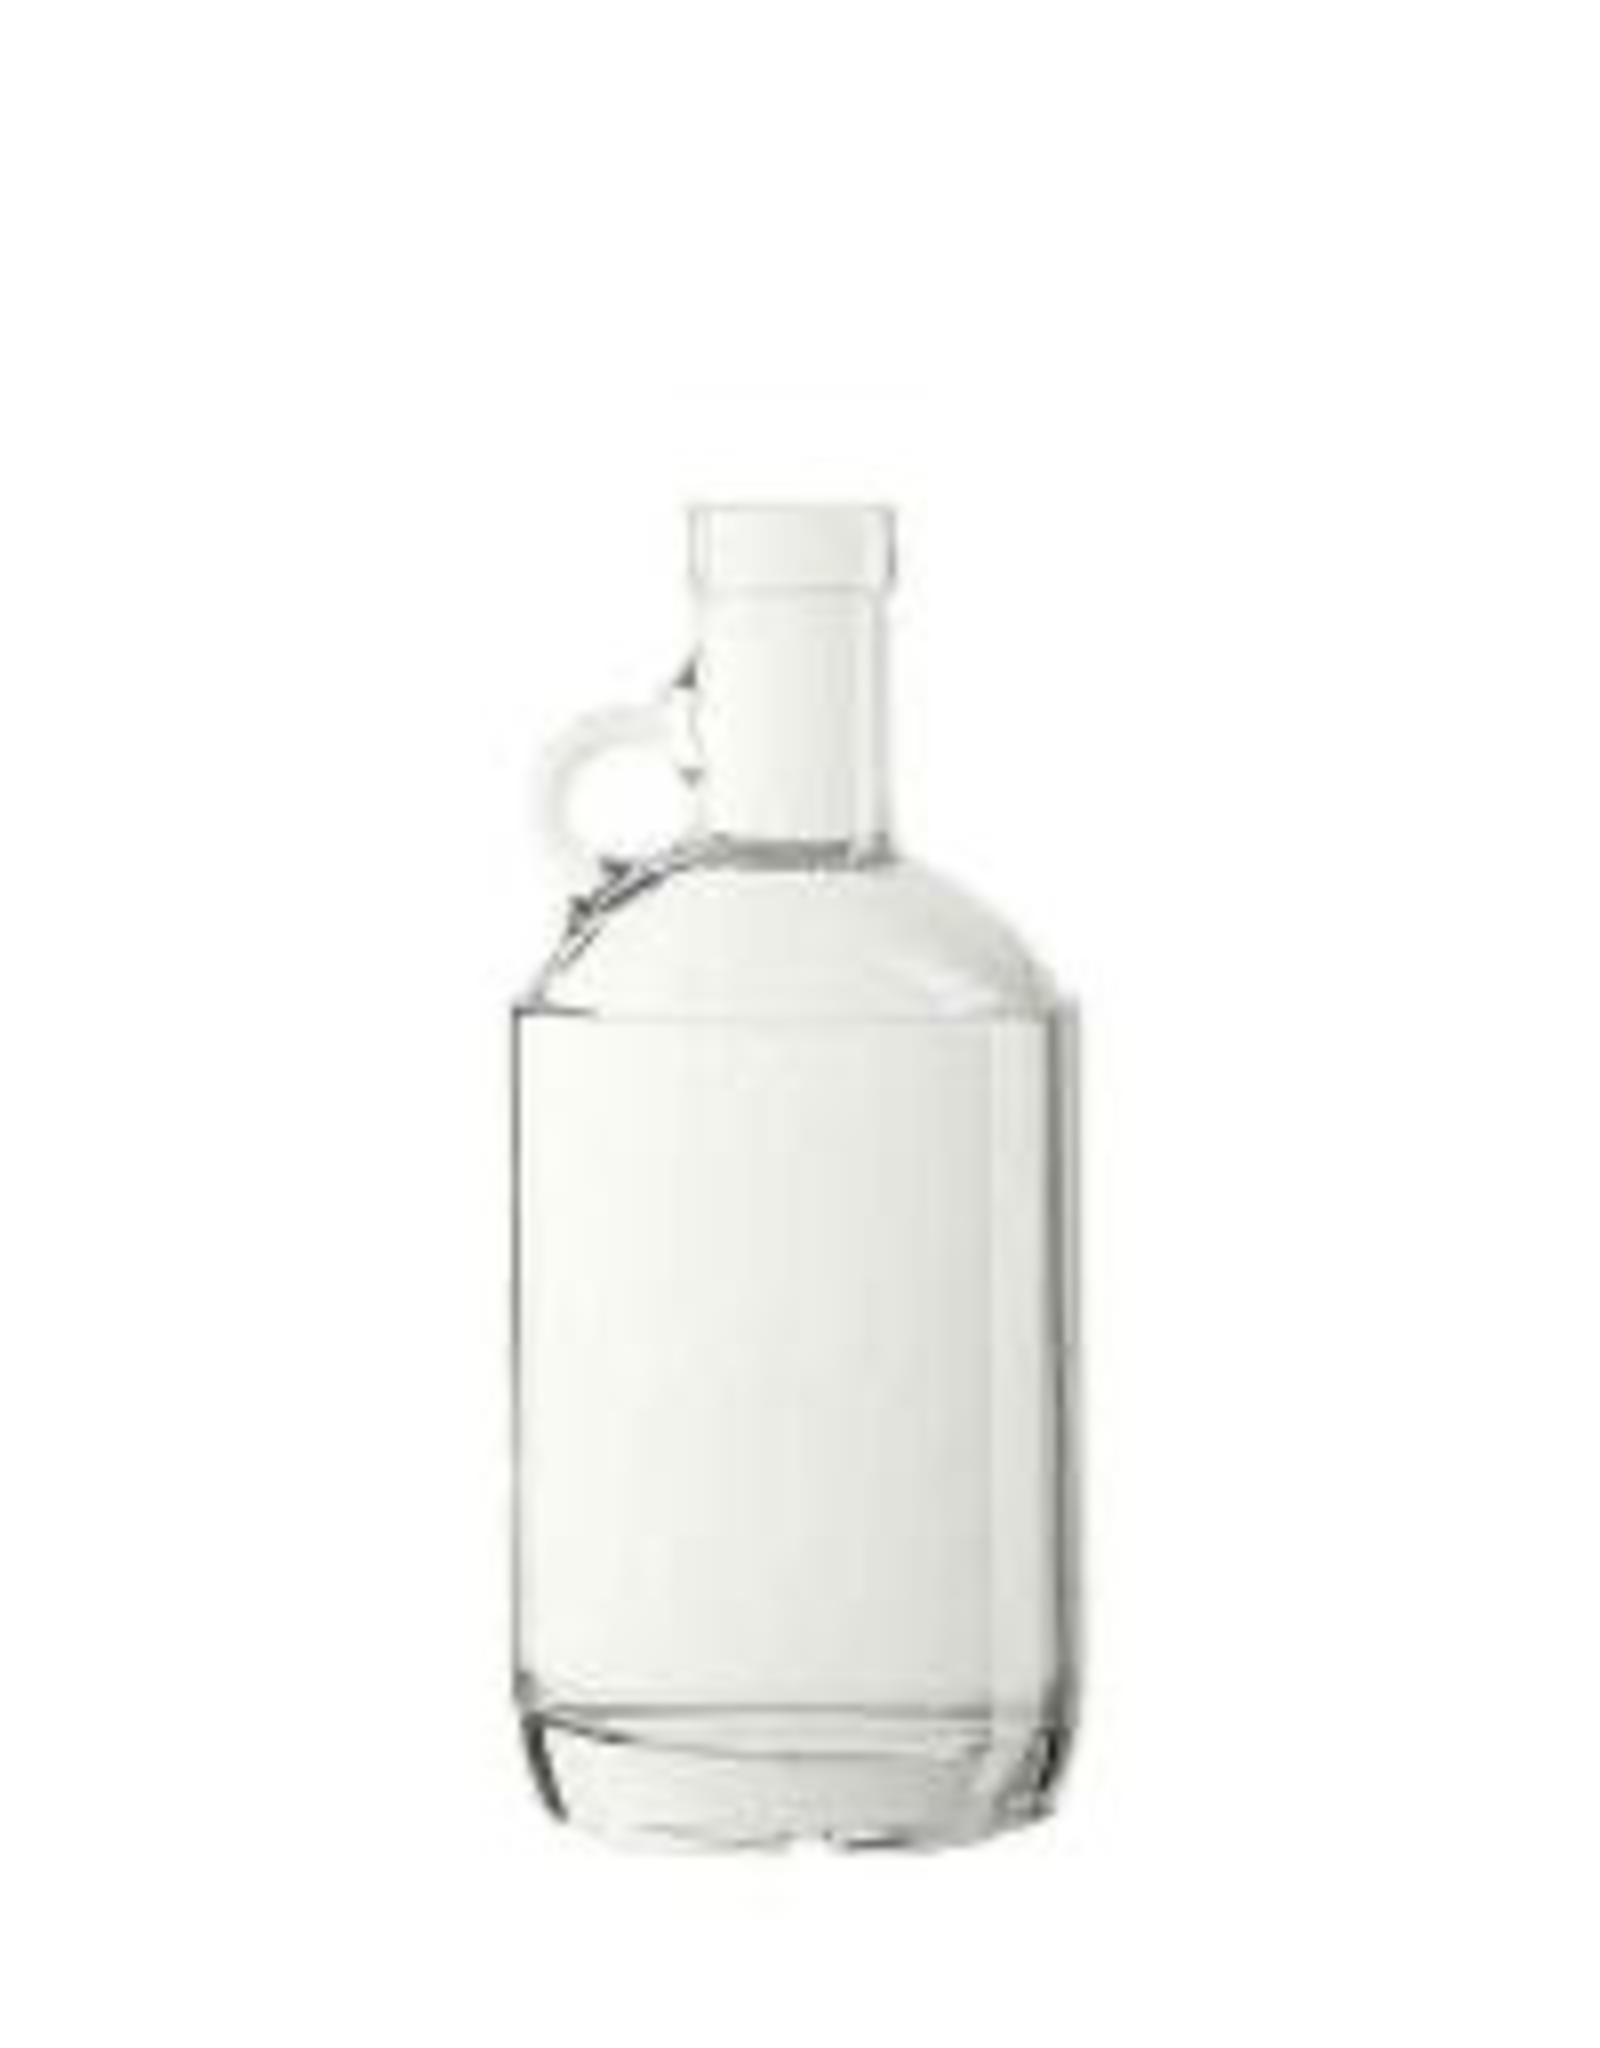 LD CARLSON Accepts 21.5mm diameter cork.<br /> Bottle Specs:<br /> Color: Flint<br /> Style: Round<br /> Finish: Bartop<br /> Bottom: Flat Bottom<br /> Height: 8.837 in<br /> Label Panel: 5.5 in<br /> Unit Pack Size : 12 Bottles Per Case